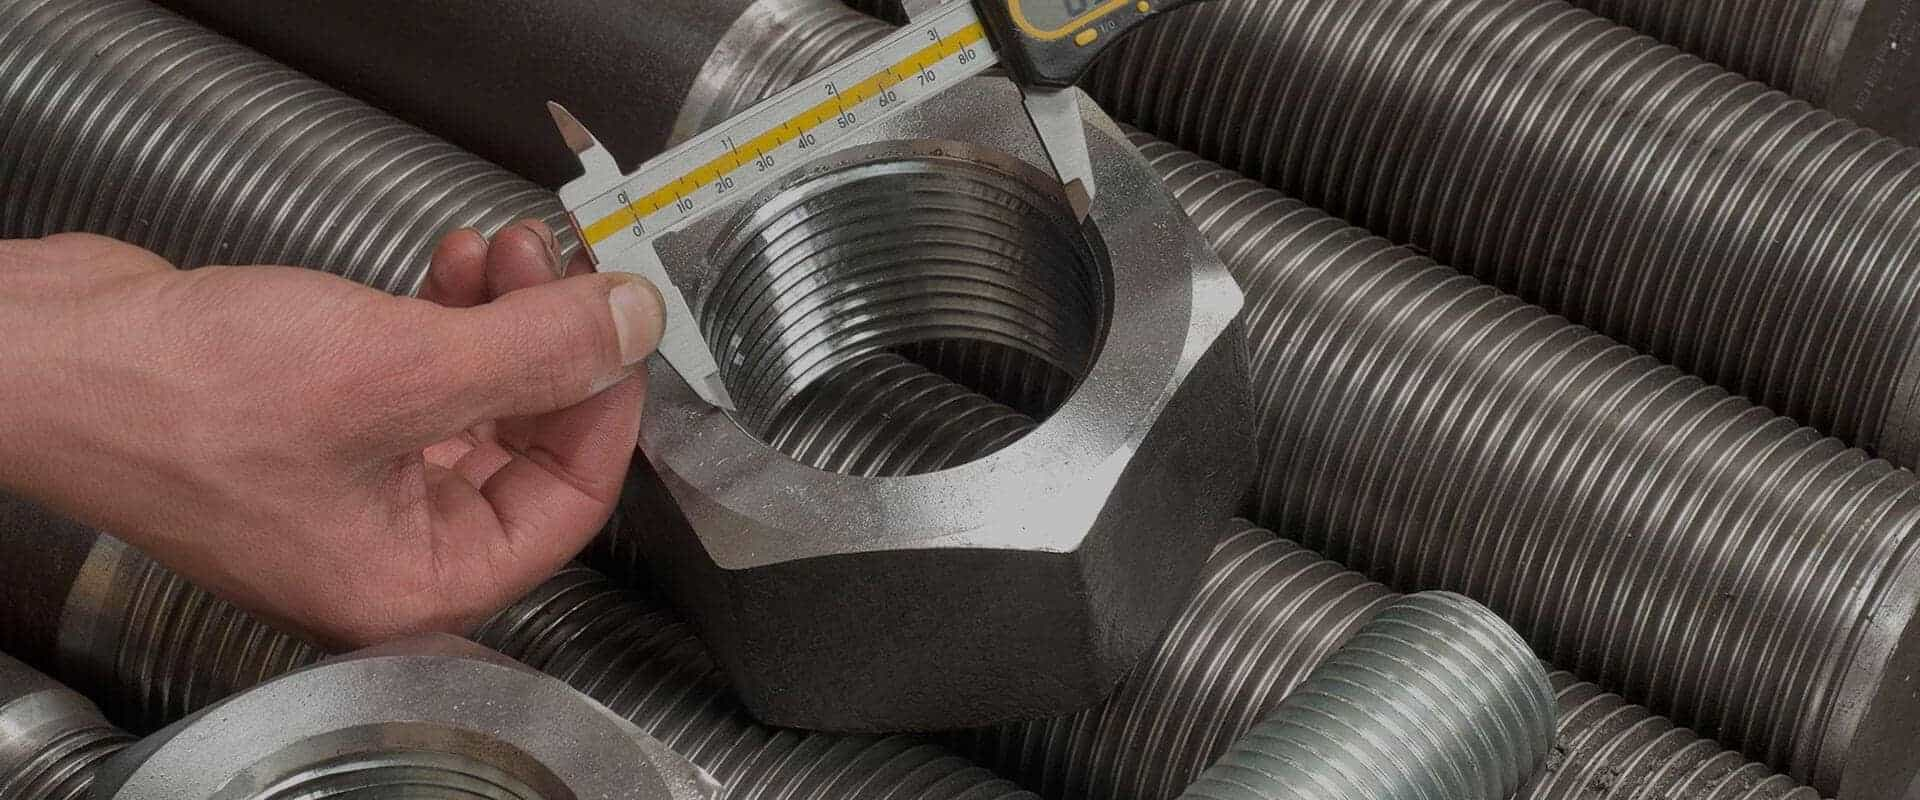 Nuts and Bolts Suppliers and Exporters